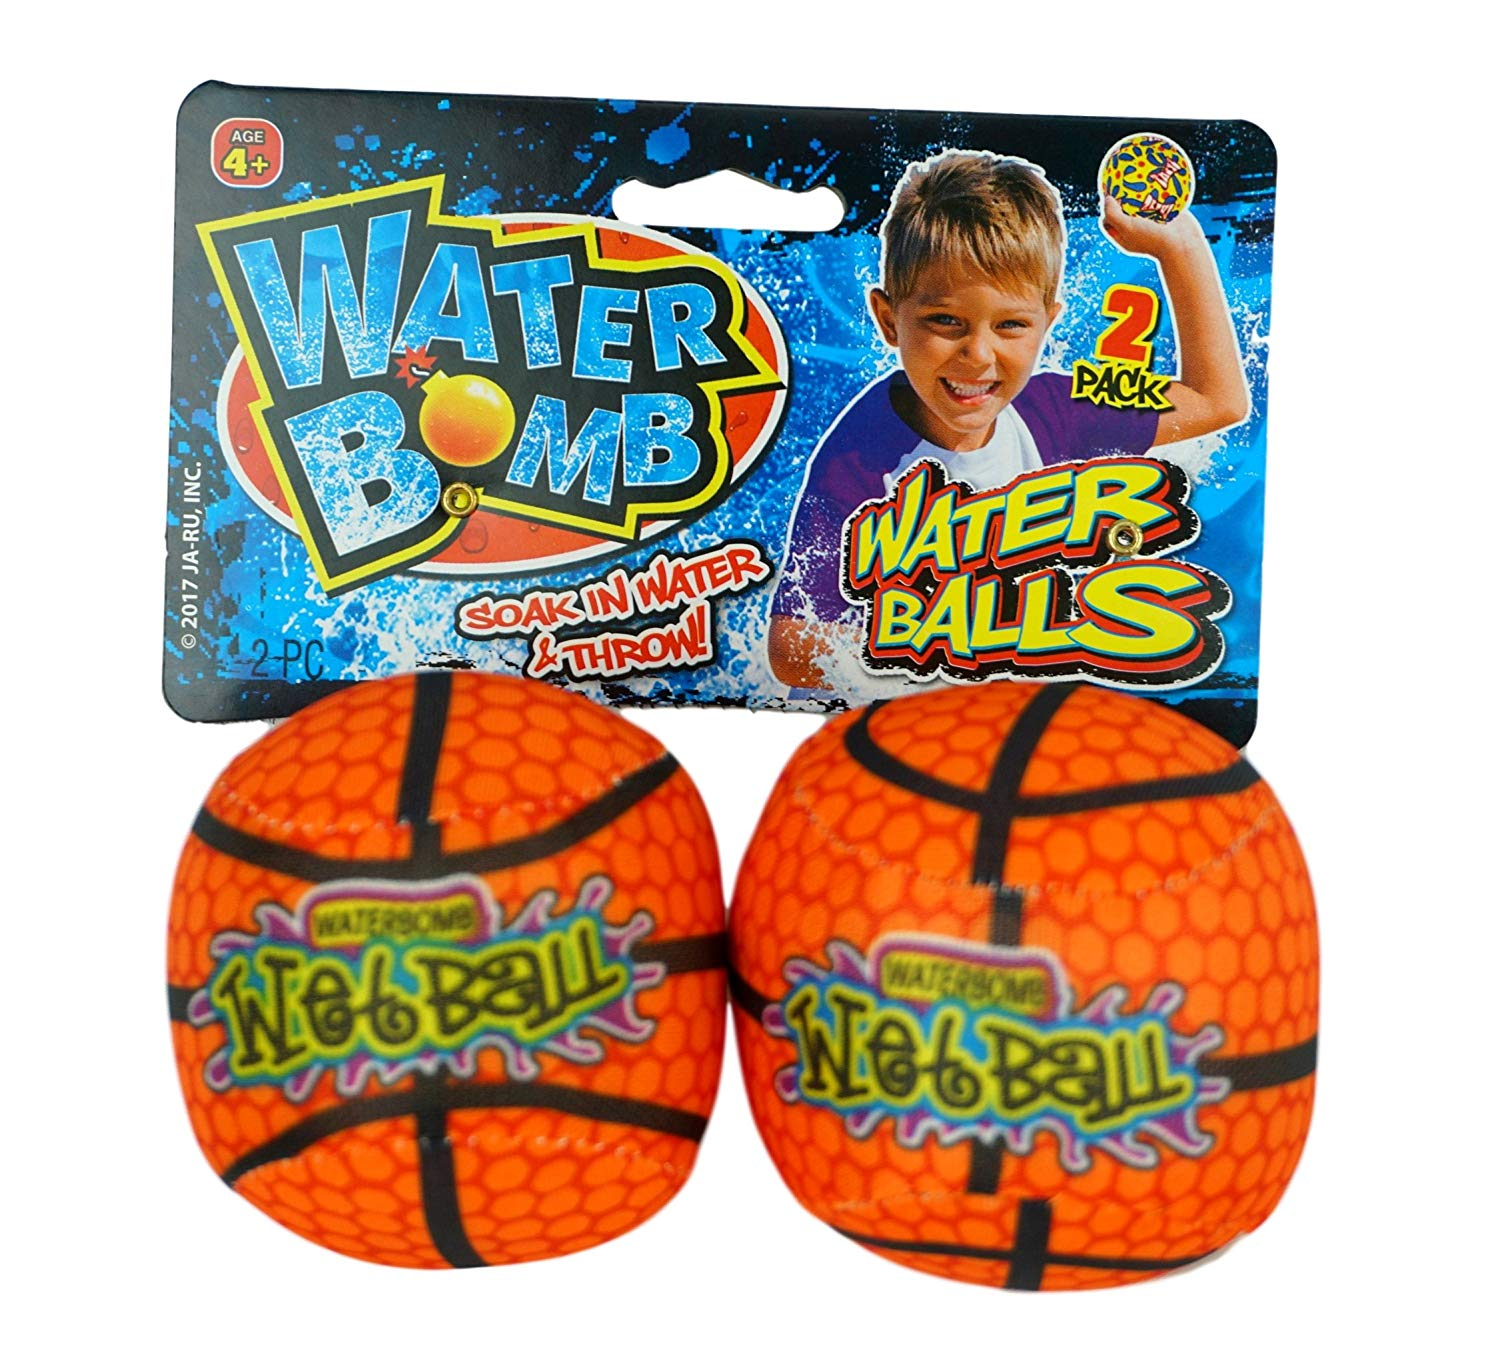 Water Spash Ball (Pair) By JA-RU. Soak and Throw the Bomb. Like water Balloons but Better. | 149 (Pack of 1 Pair)